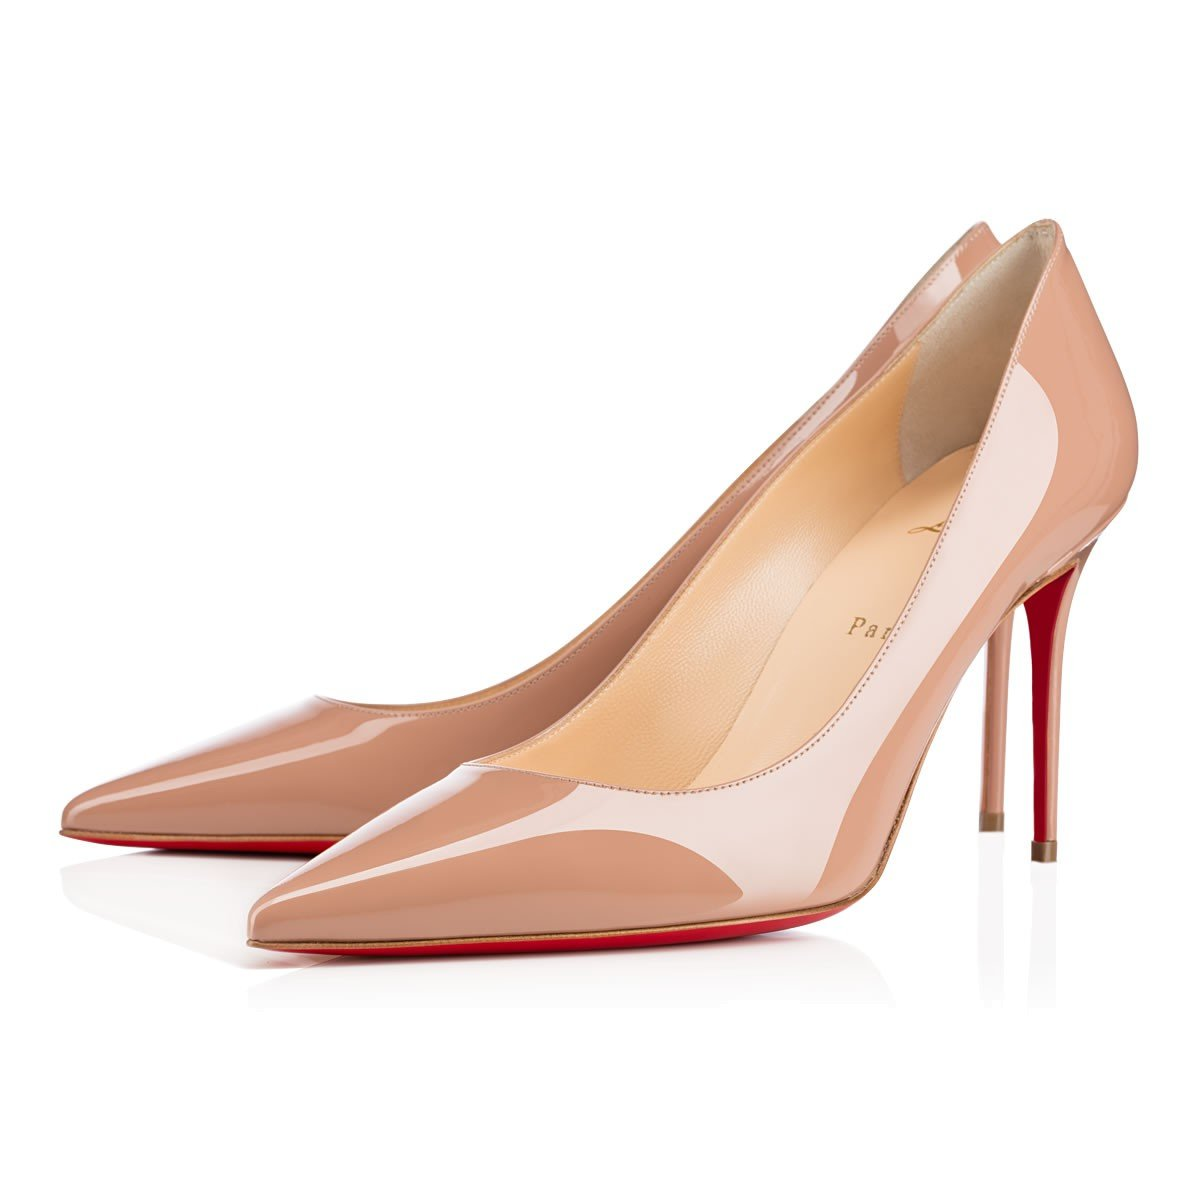 dc5345688f40 Lyst - Christian Louboutin Decollete 554 Patent in Pink